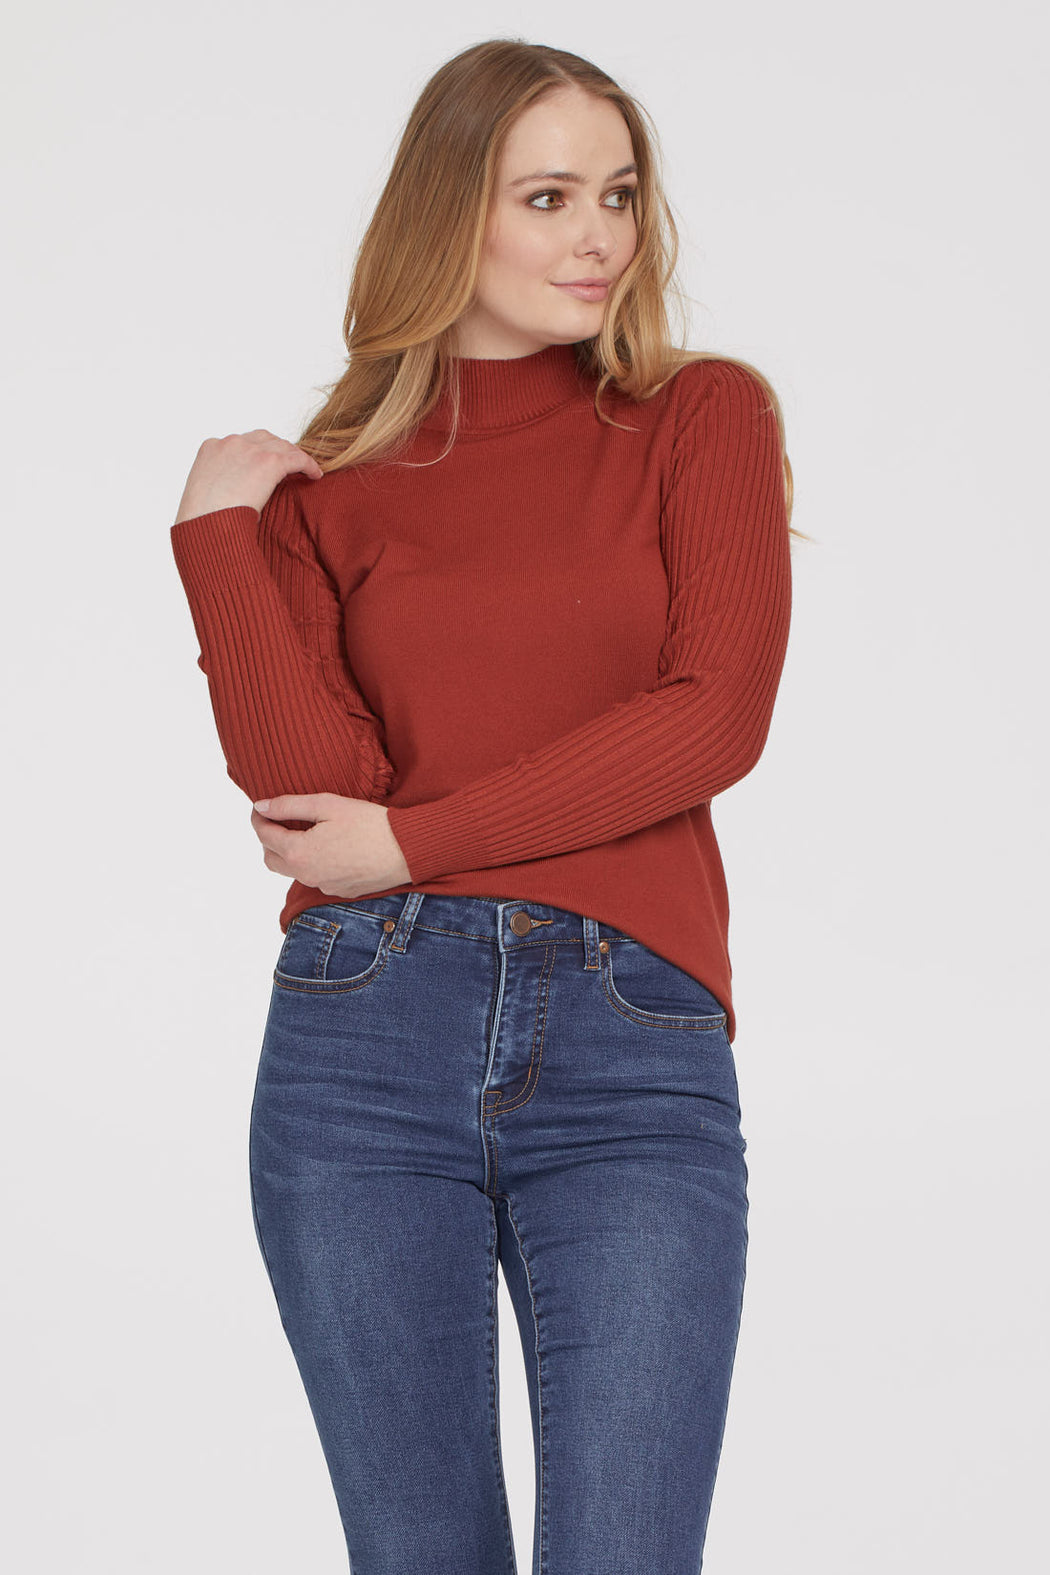 Struggling to find a cute top to wear during a cozy coffee date or casual stroll? Well, look no further than this sweater, whose dual ribbed knit is guaranteed to keep you looking stylish while feeling cozy. Best of all, a turtleneck is made to keep you nice and warm as the temperatures begin to drop and the accent buttons on the sleeve add just the right detail.